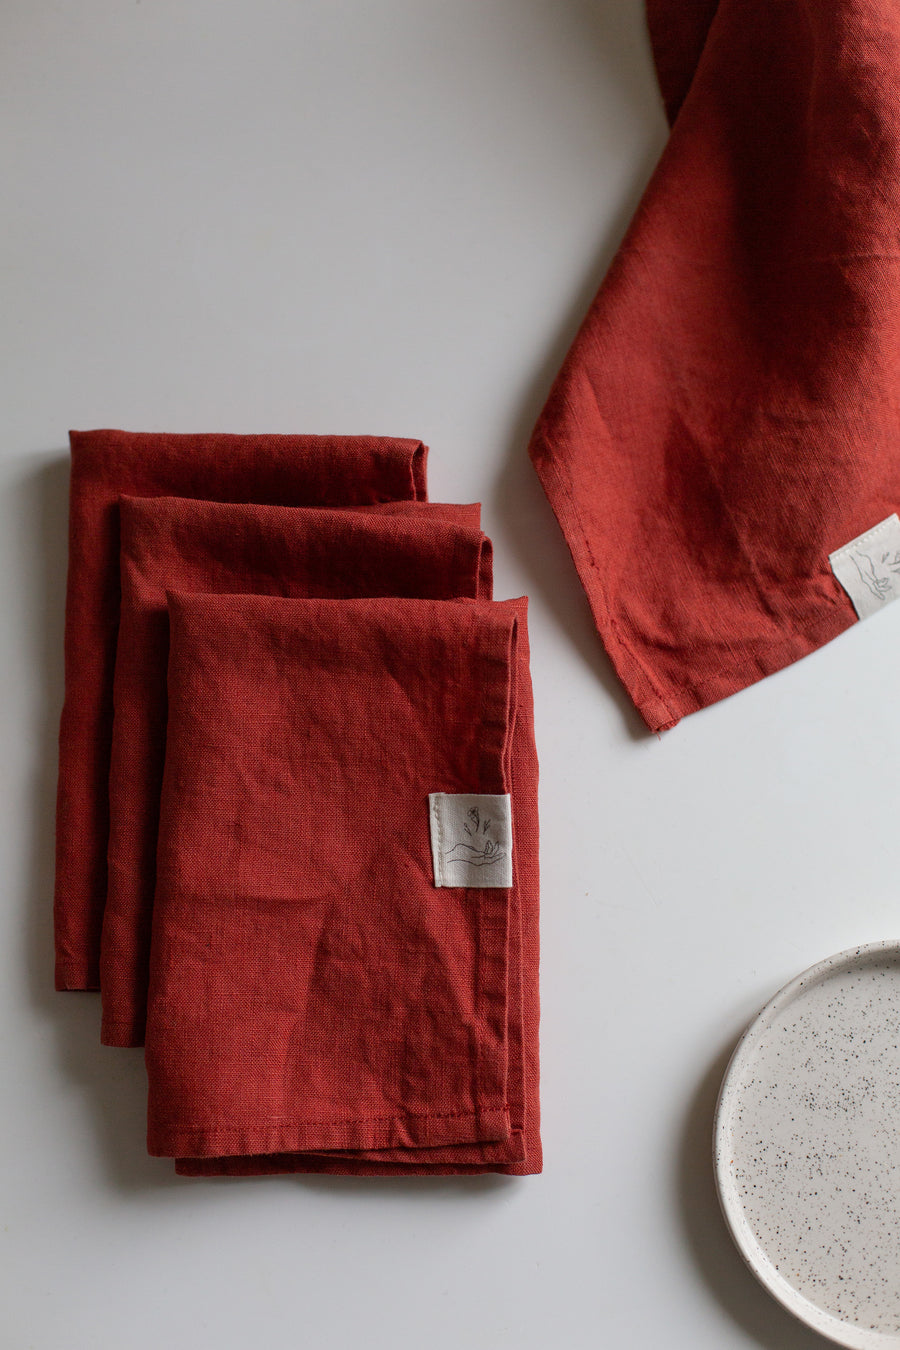 Serviettes de table en lin | Terra cotta